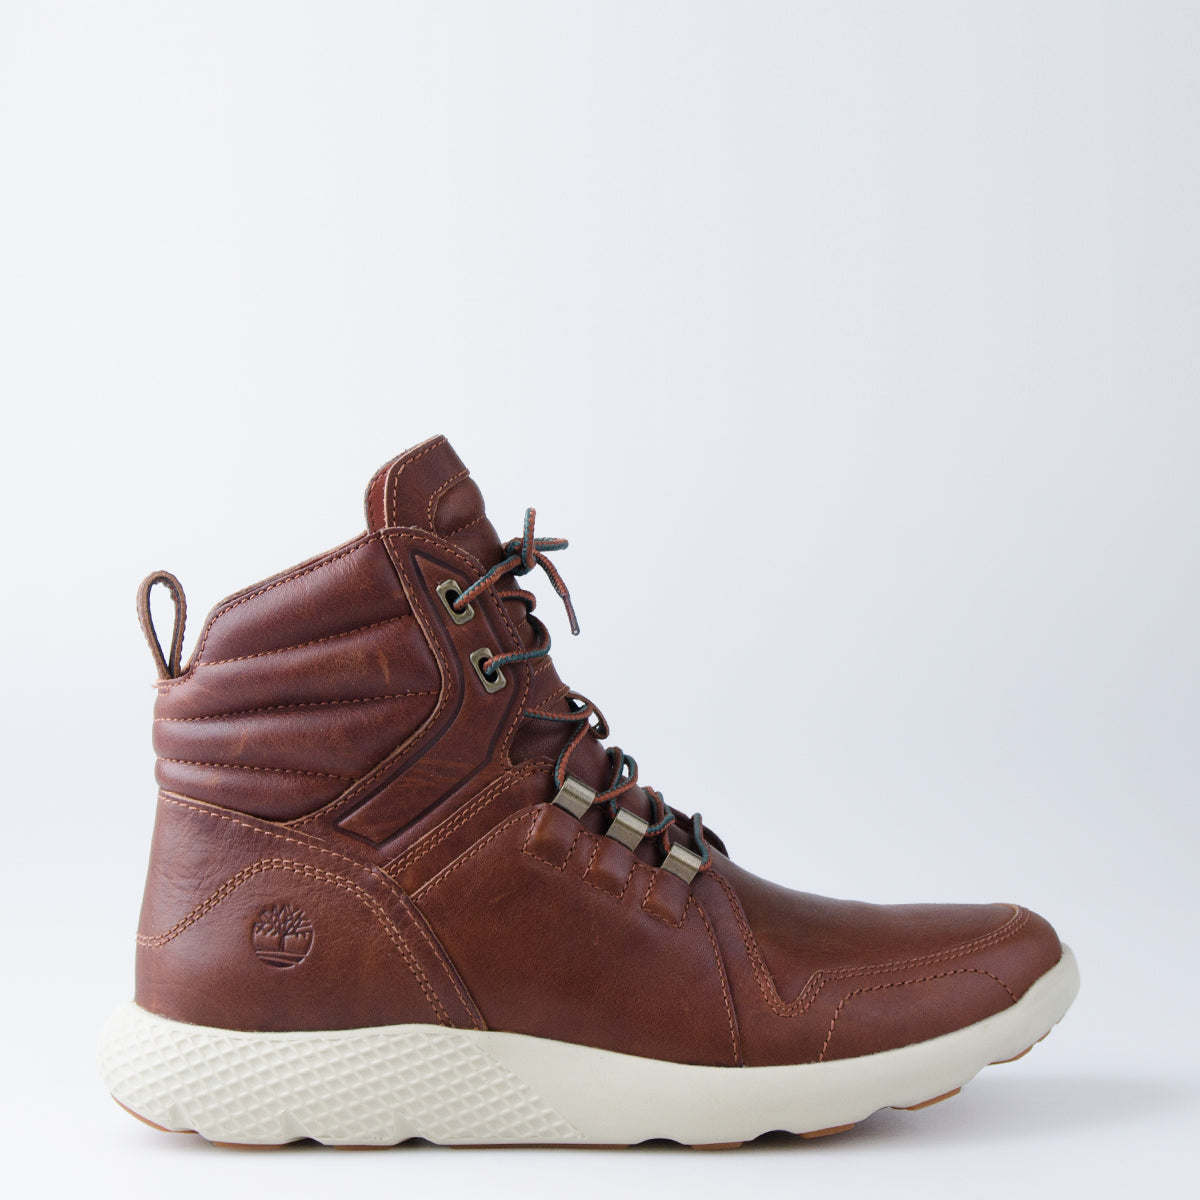 87193db7a7b2 Men s Timberland Limited Release FlyRoam Leather Boots Sundance Brown